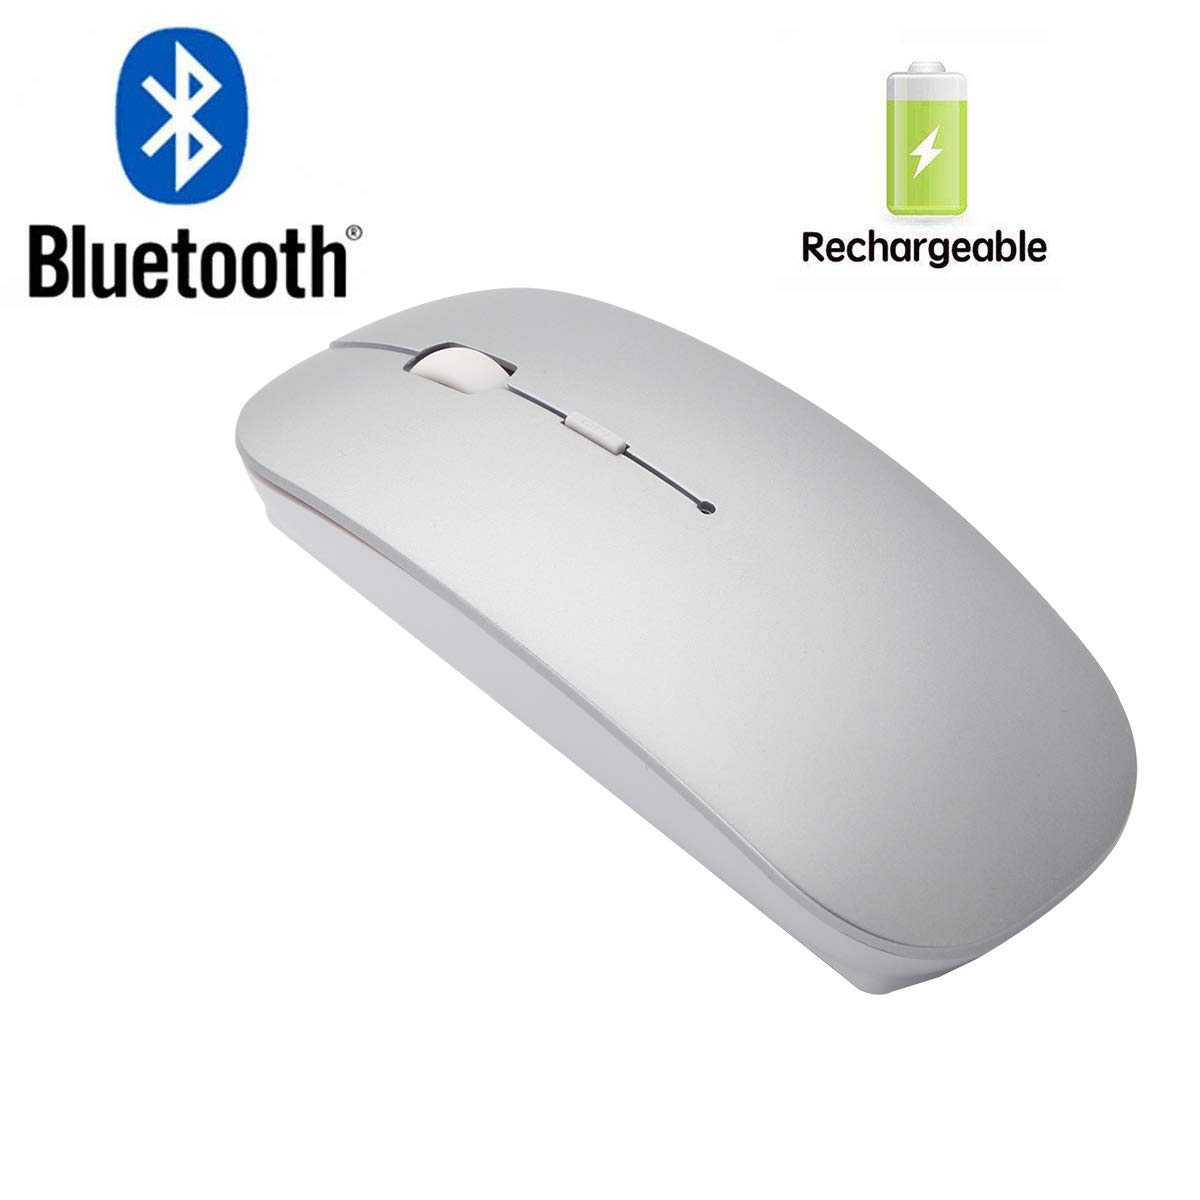 16123ecfaee Amazon.com: Bianco Slim Rechargeable Bluetooth Wireless Mouse for PC  Computer Notebook Computer Android Tablet Vomputer Intelligent Equipment  (Silver): ...